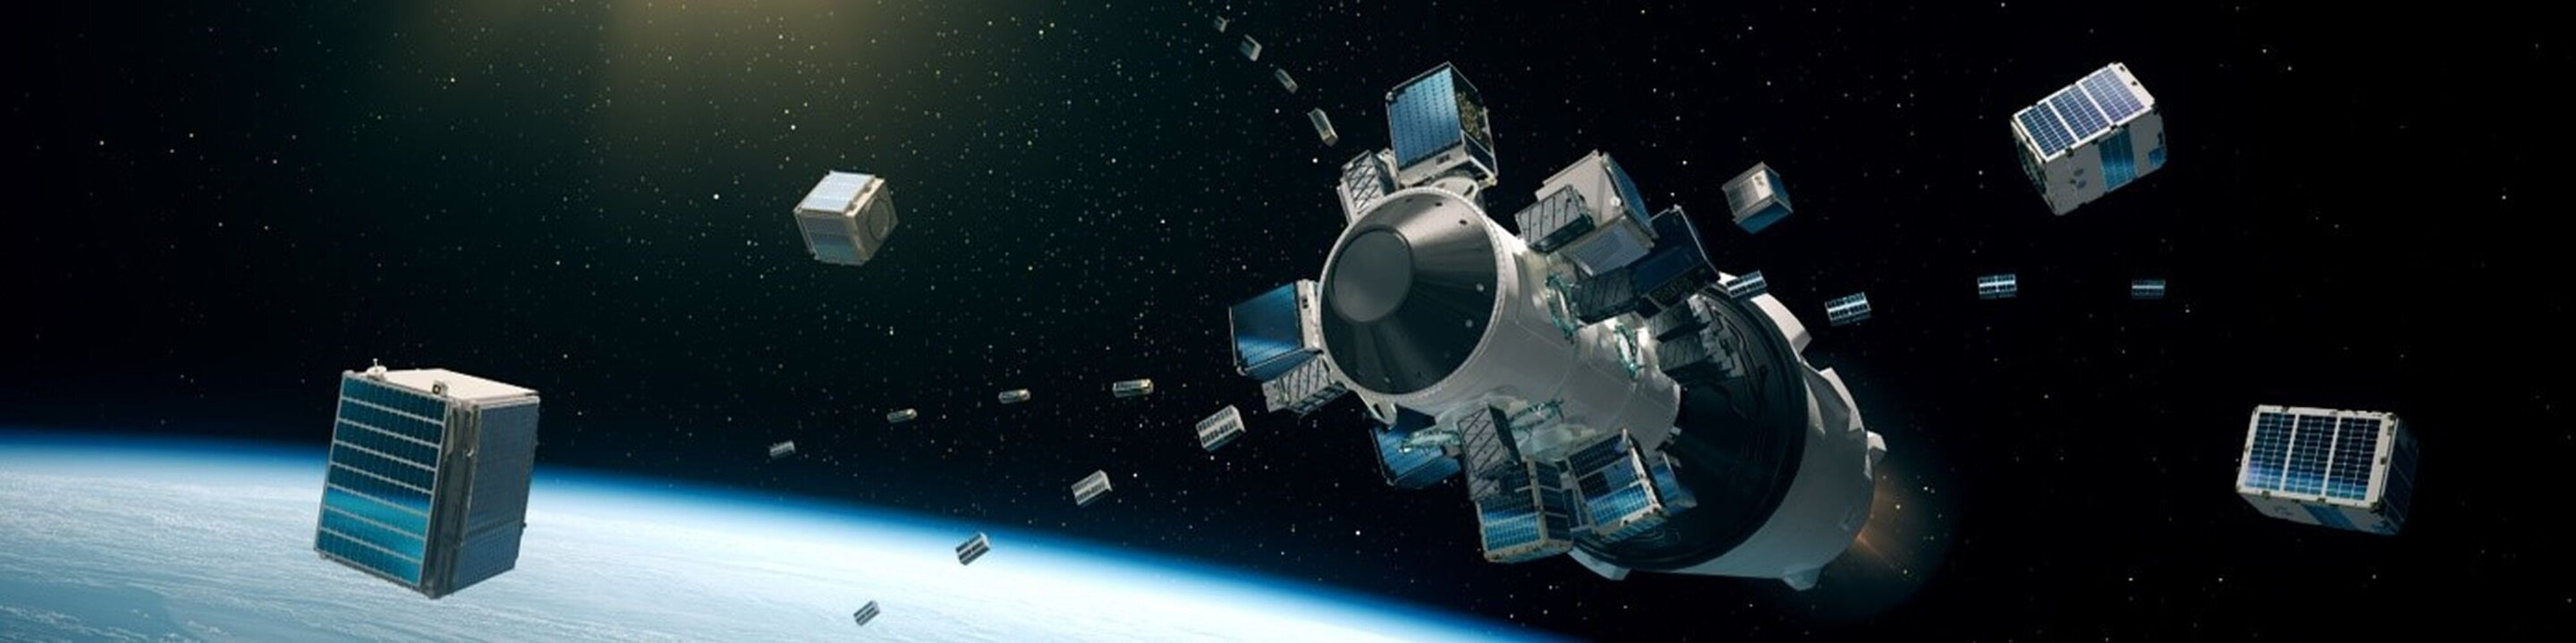 SpaceX to send TU Dresden satellite into space